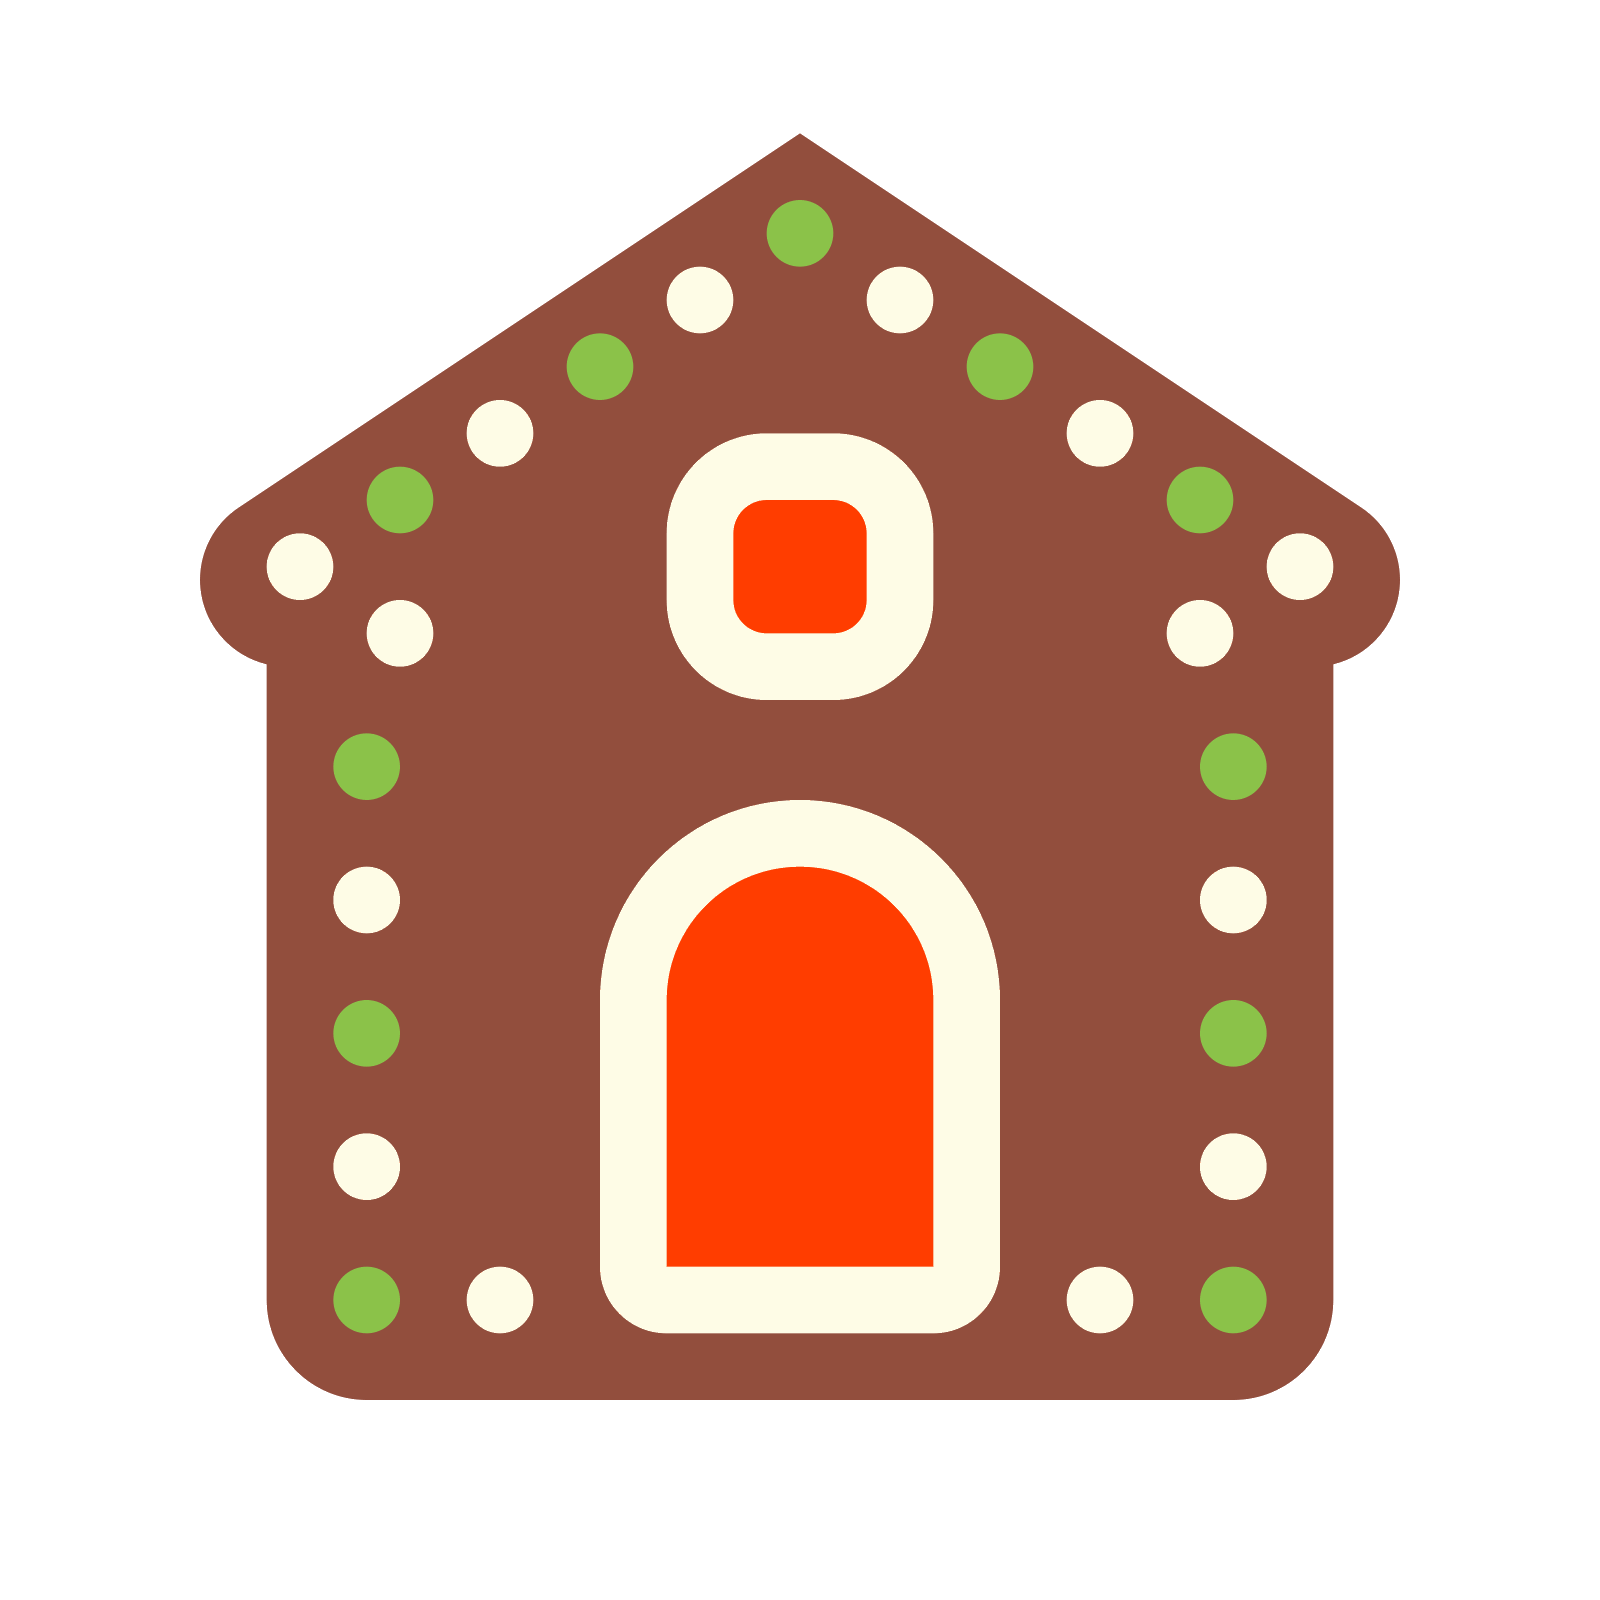 Gingerbread clipart festive. House icon free download